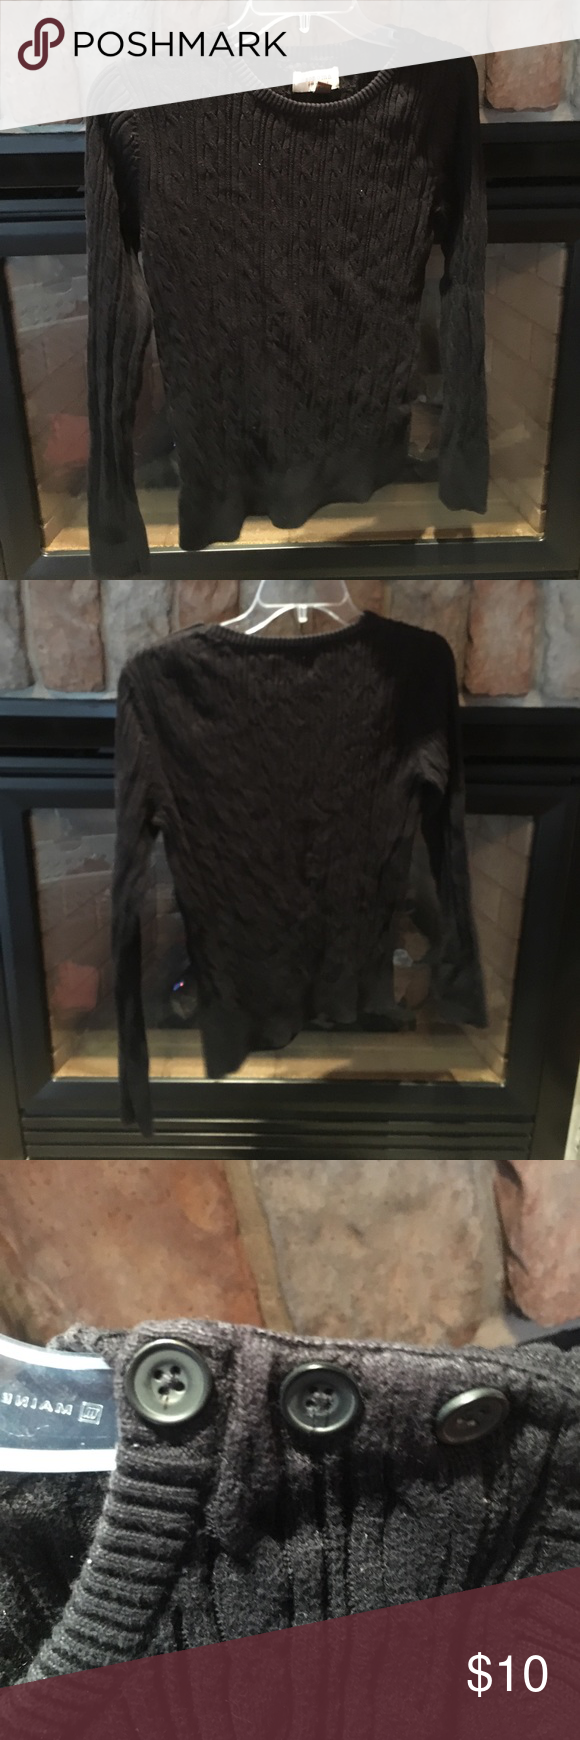 🚨final sale 🚨Black Cable-knit Sweater | Cable knit sweaters ...